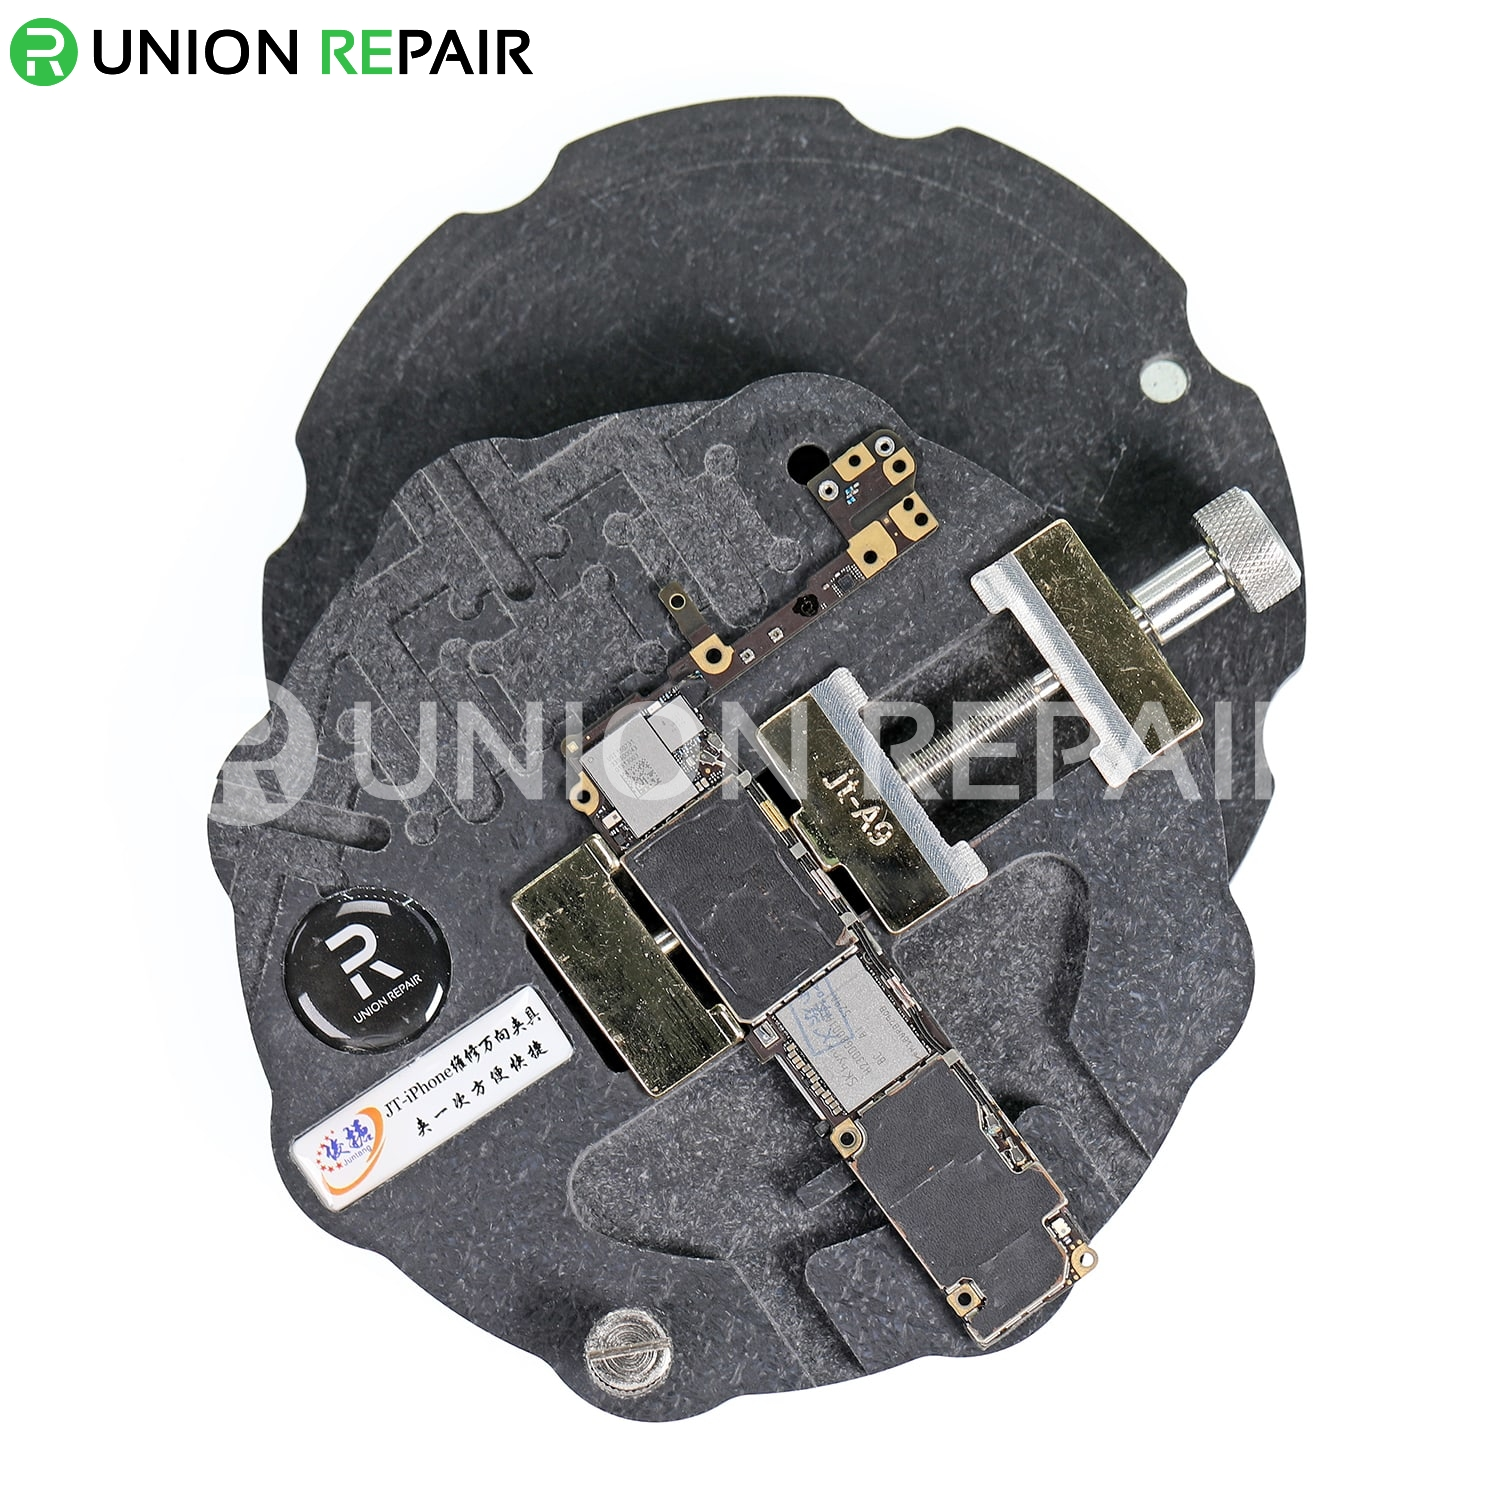 JT-A9 Rotatable Universal PCB Fixture for iPhone 4-8P iPad Android